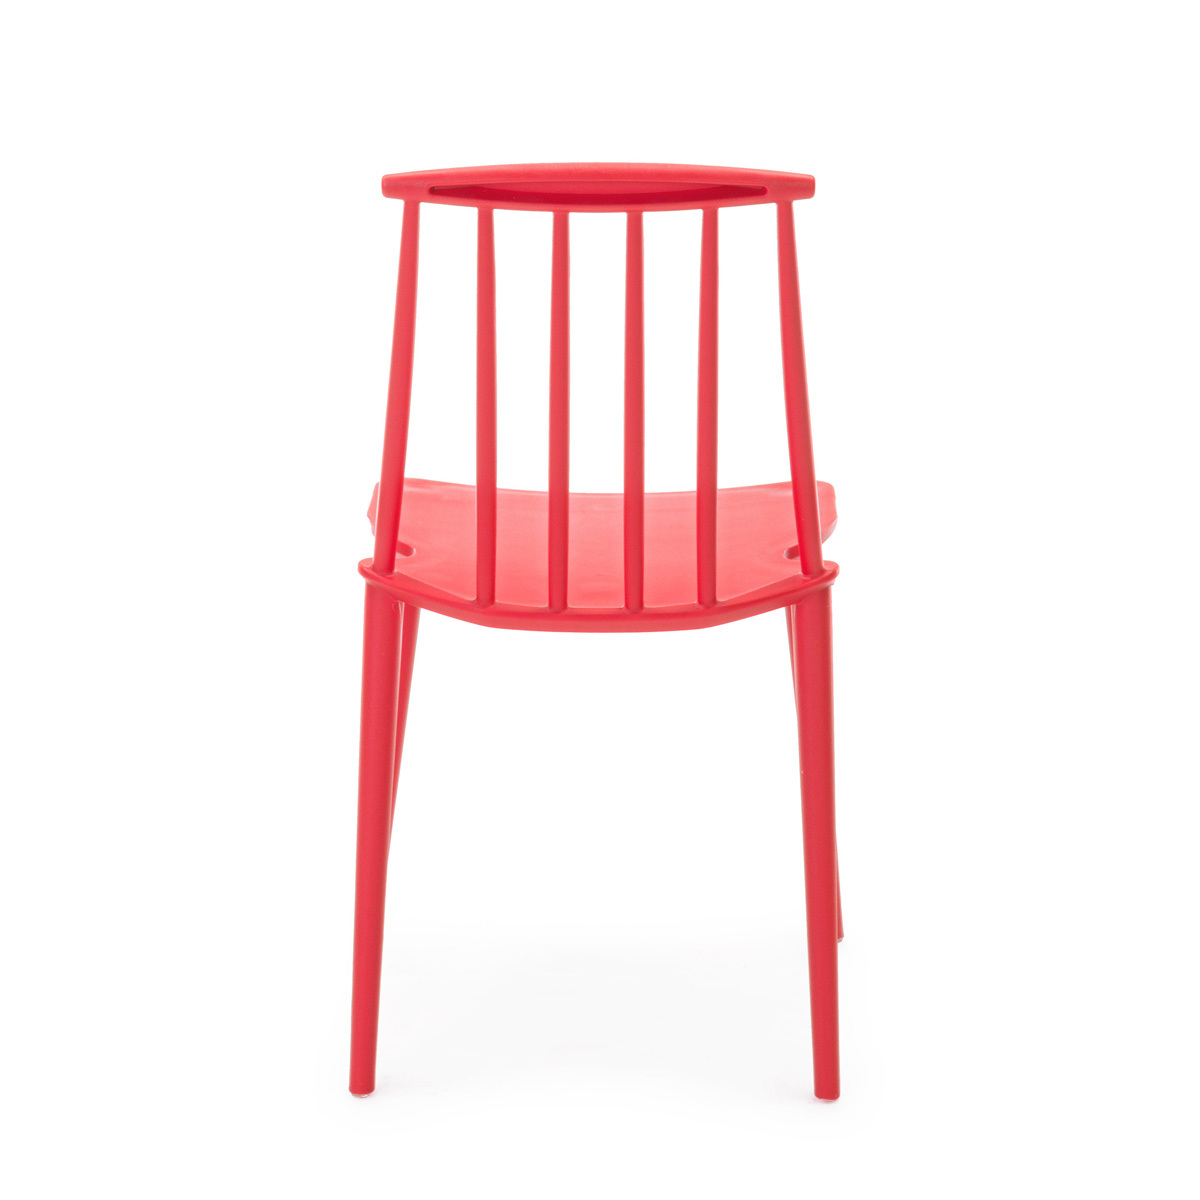 Photos 3: Bizzotto Chair in polypropylene - red 0731690